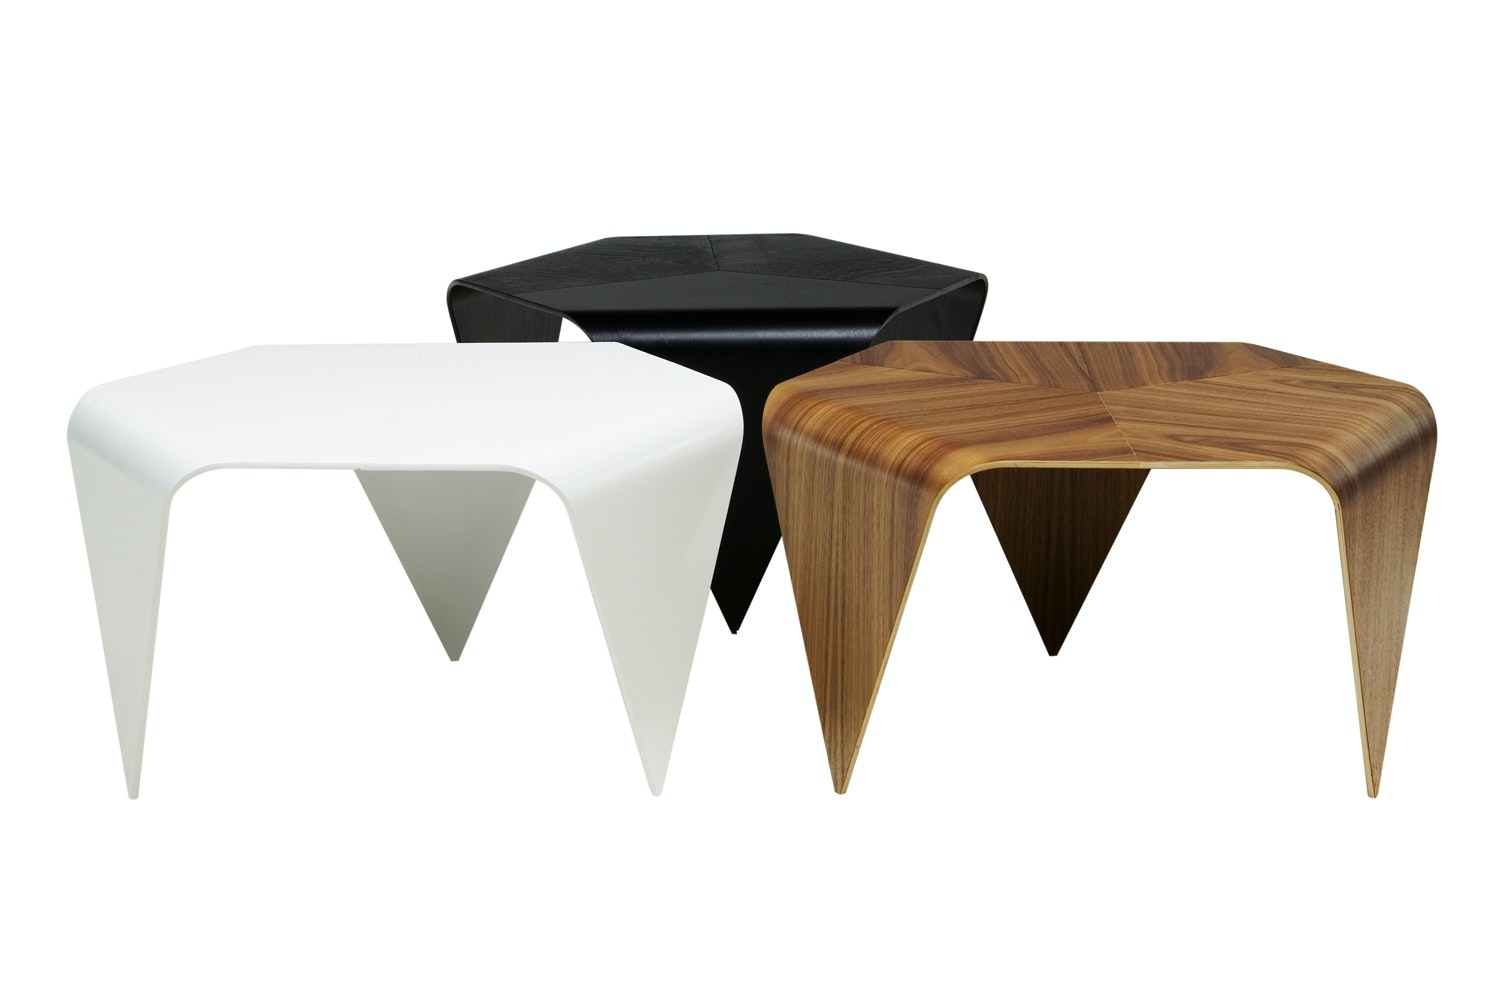 Trienna Table by Ilmari Tapiovaara for Artek